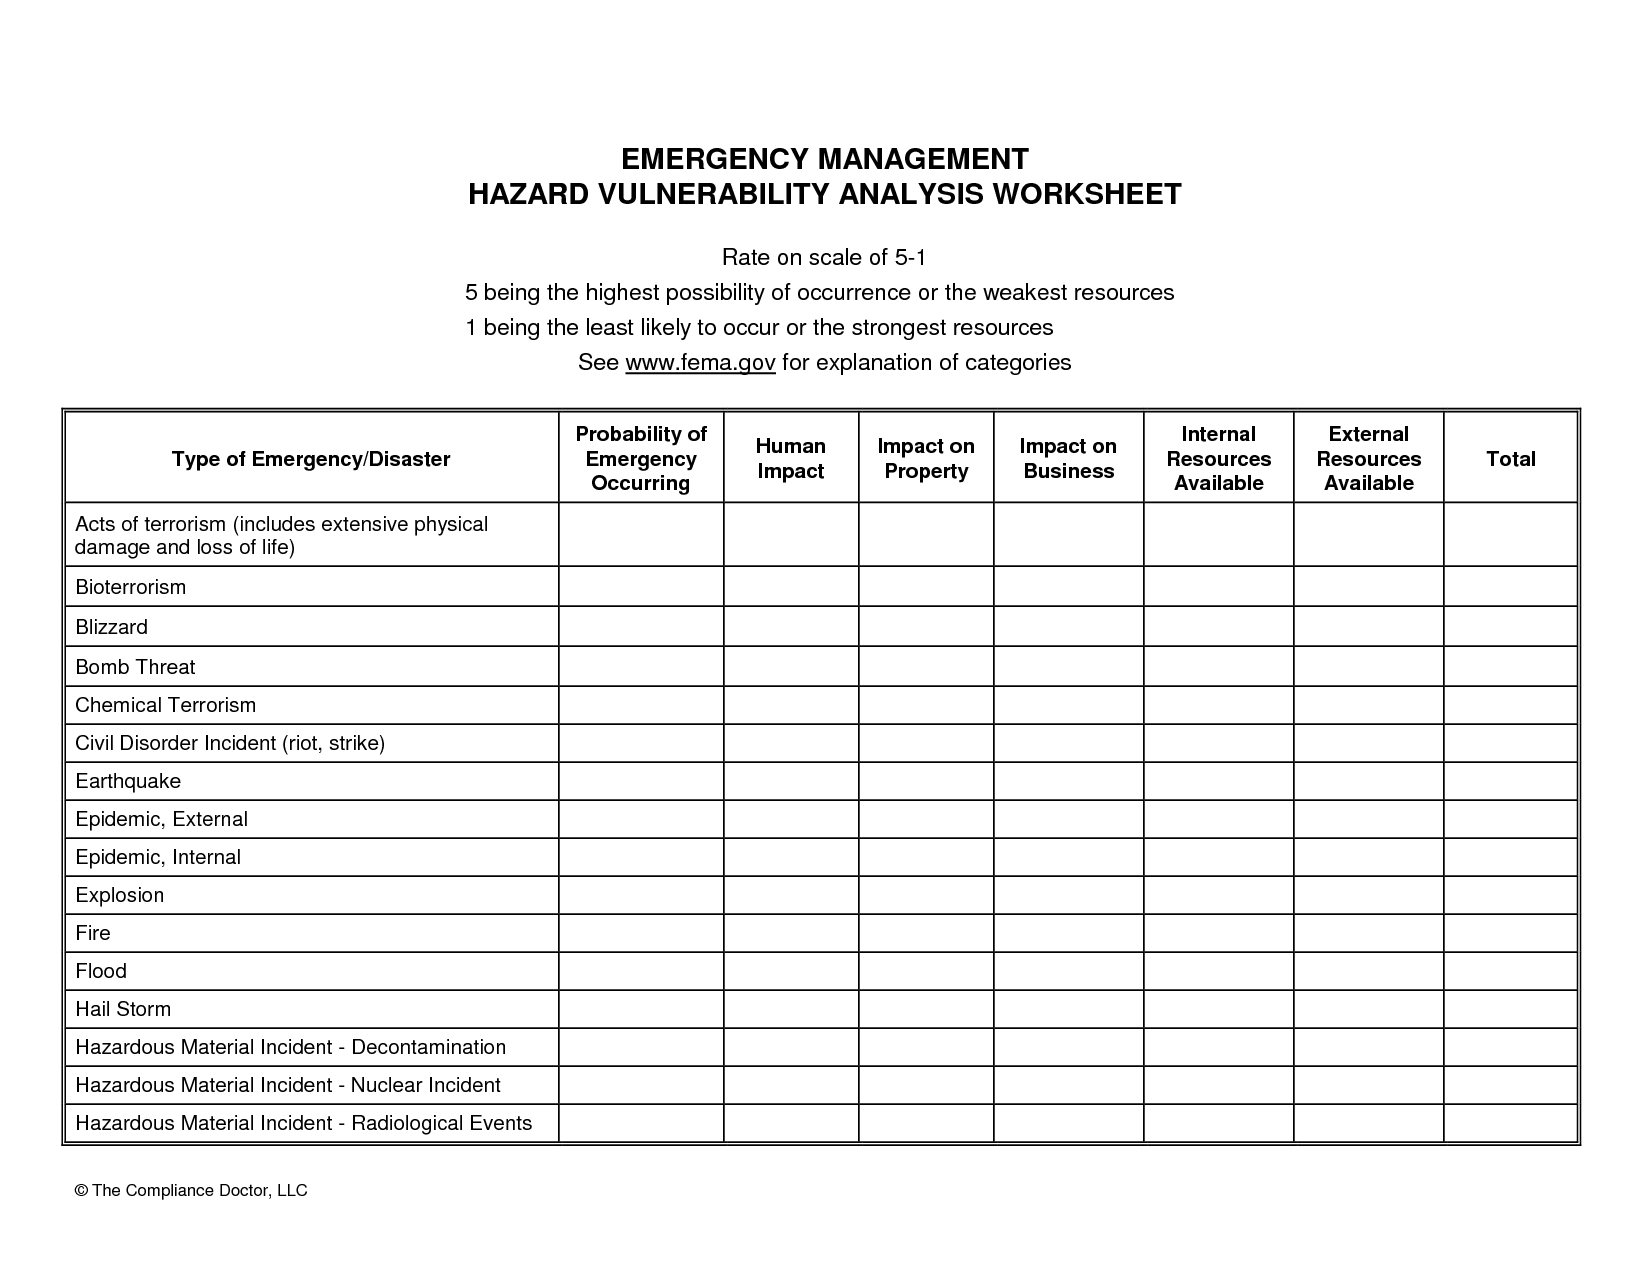 Hazardous Materials Worksheet